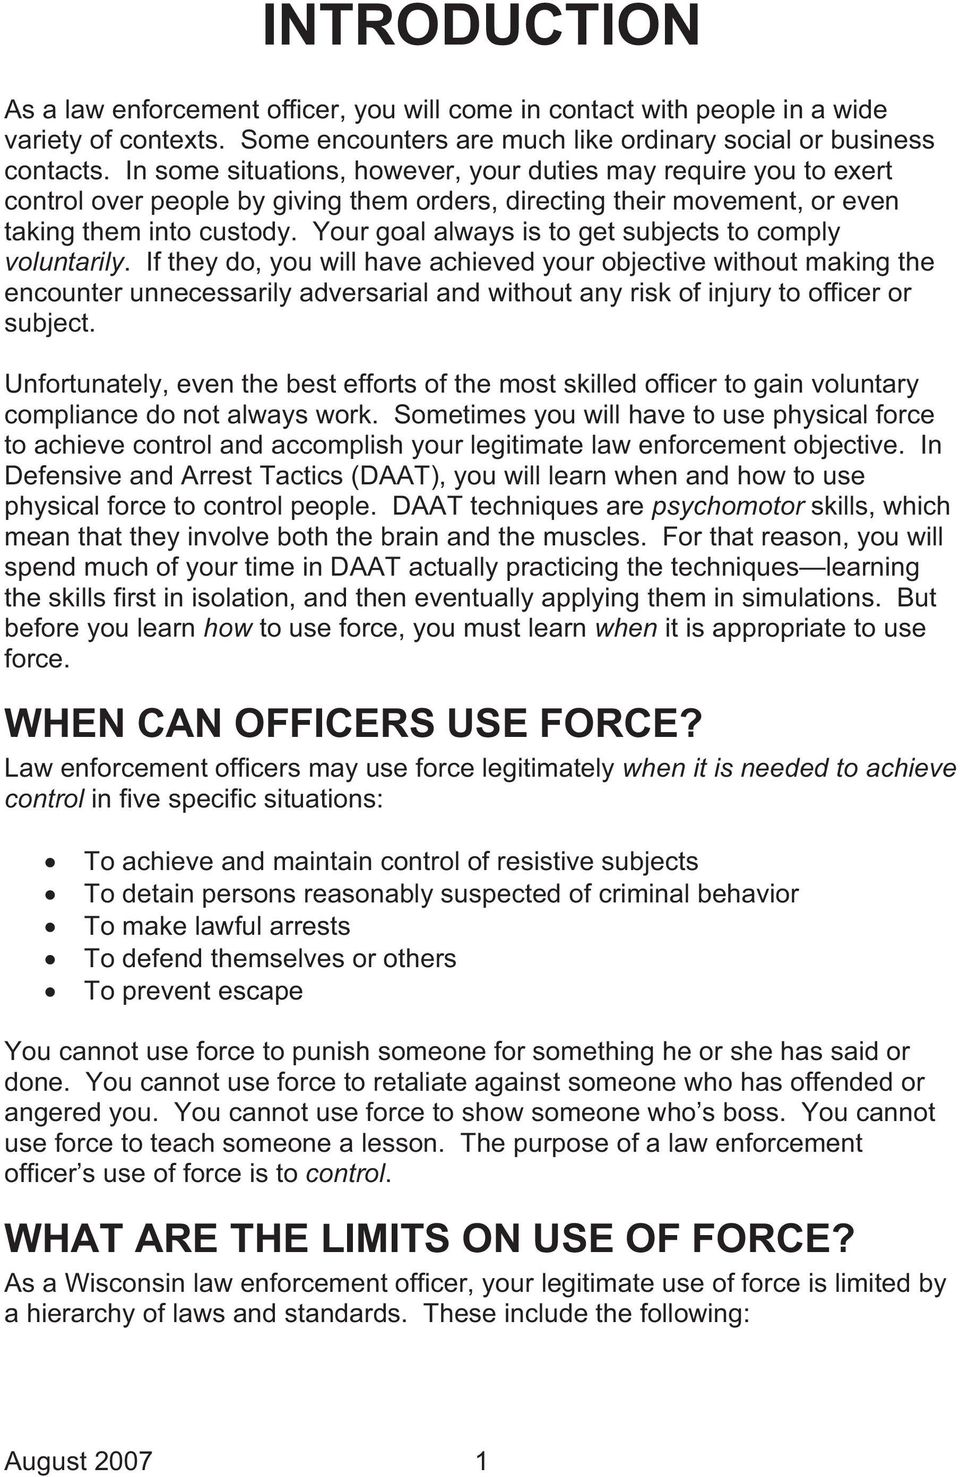 Defensive and arrest tactics. A training guide for law enforcement.